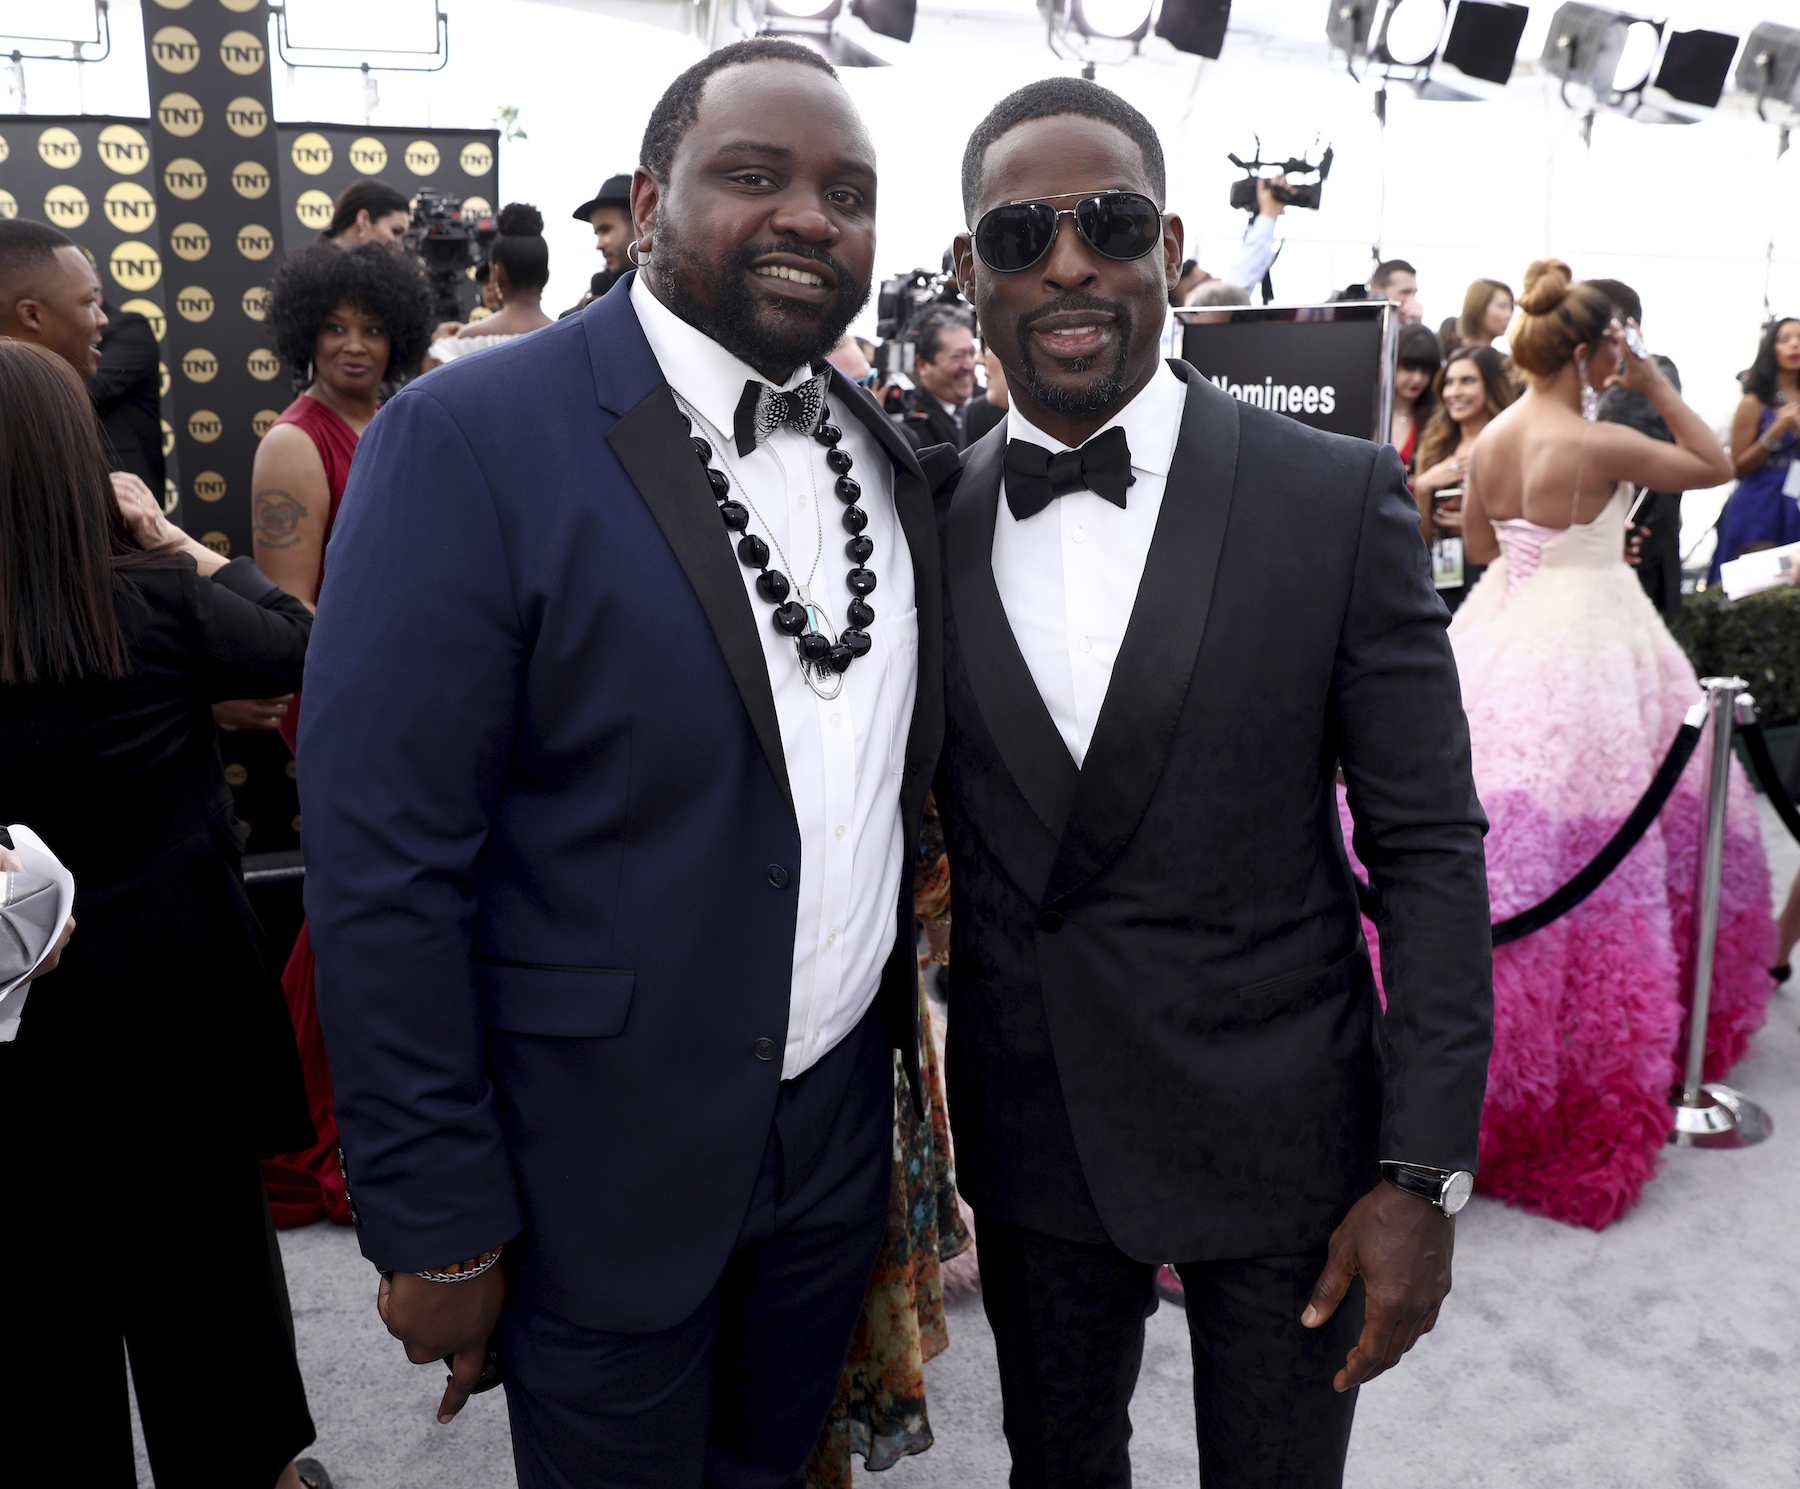 "<div class=""meta image-caption""><div class=""origin-logo origin-image ap""><span>AP</span></div><span class=""caption-text"">Brian Tyree Henry, left, and Sterling K. Brown arrive at the 25th annual Screen Actors Guild Awards at the Shrine Auditorium & Expo Hall on Sunday, Jan. 27, 2019, in Los Angeles. (Matt Sayles/Invision/AP)</span></div>"